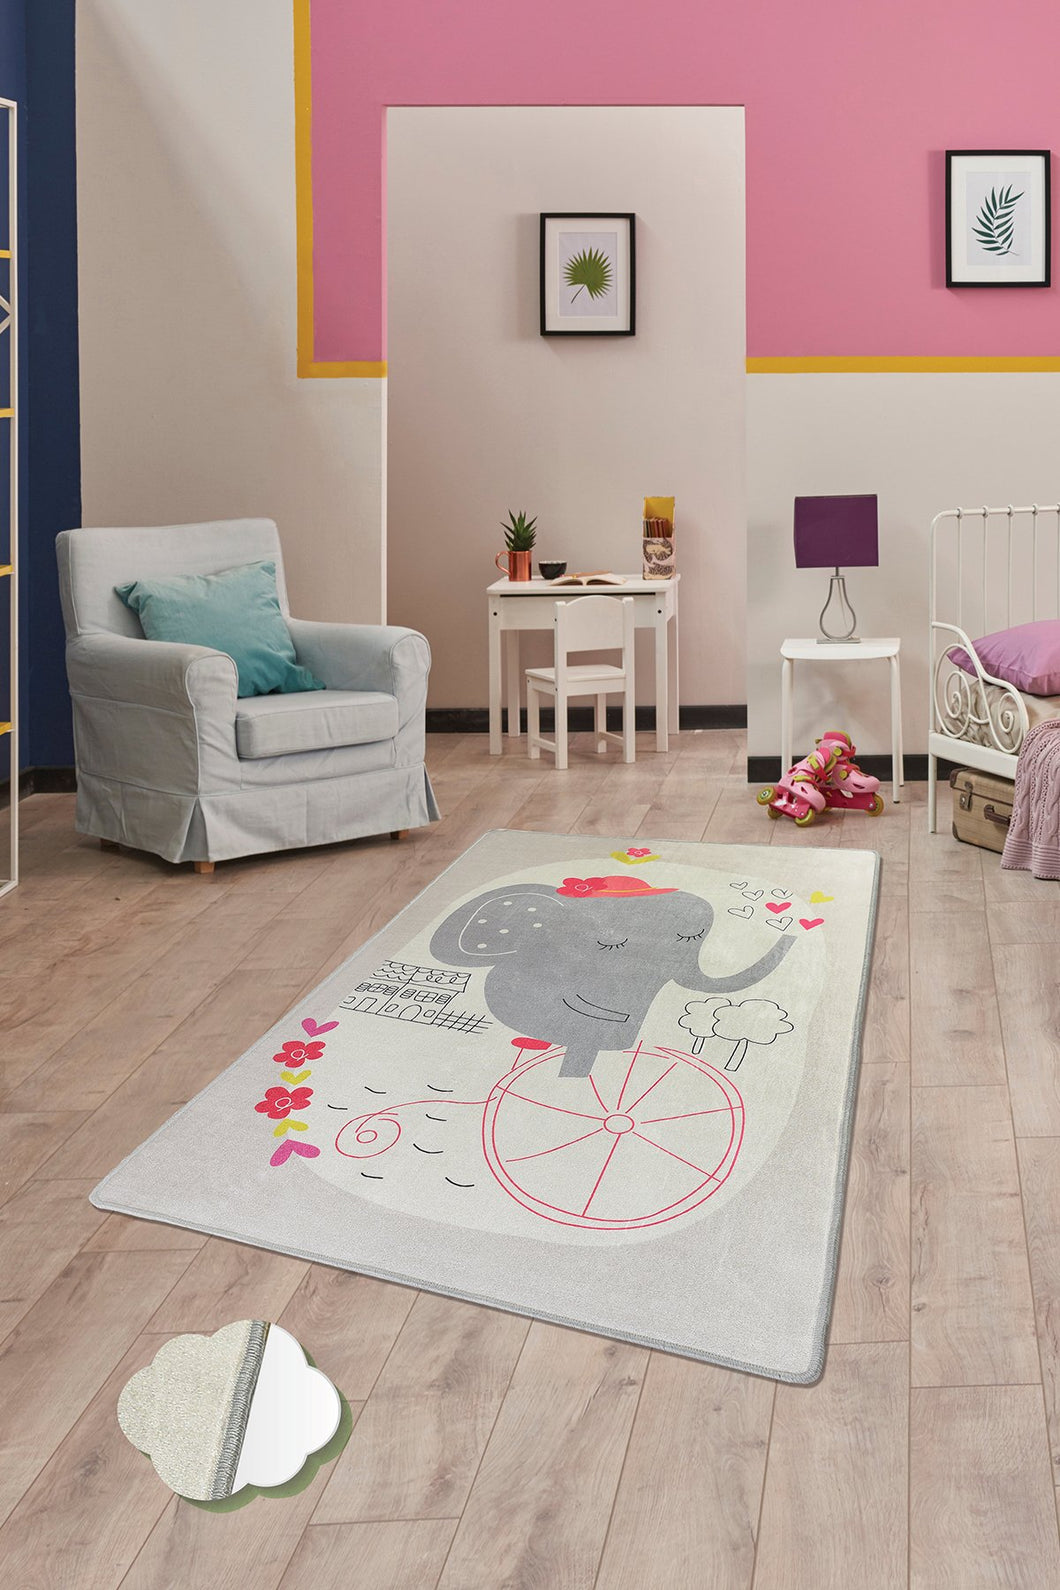 Antdecor Elephants Bike Rugs for kids Highway  3'x 5' 39